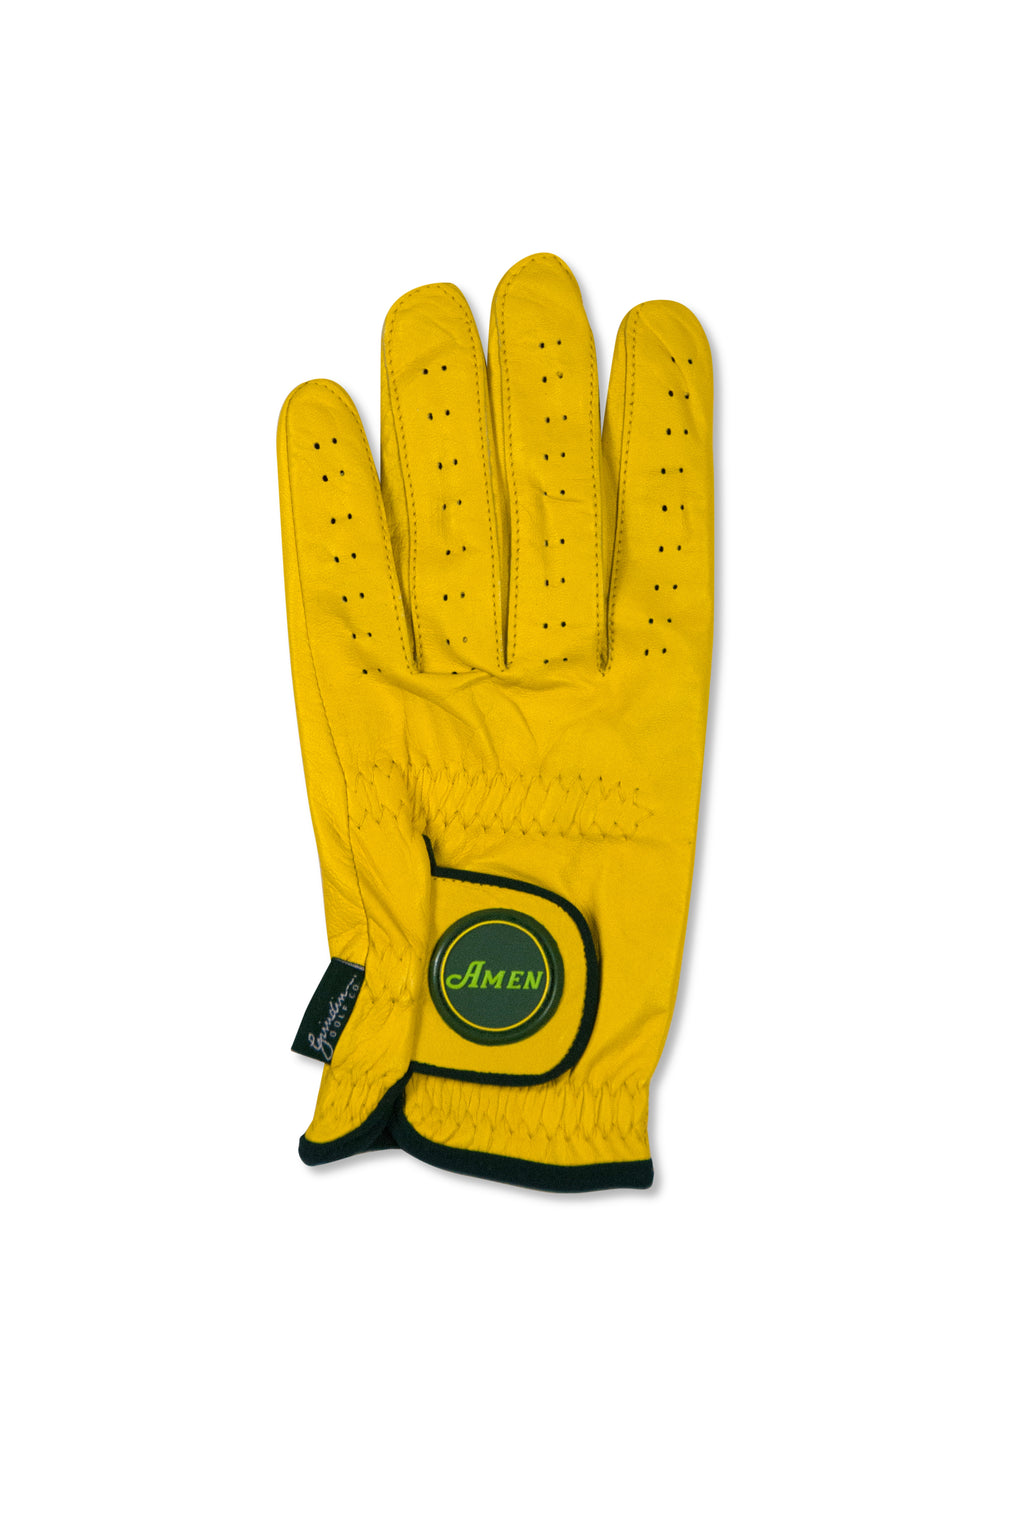 Amen Logo - Yellow Cabretta Leather Golf Glove